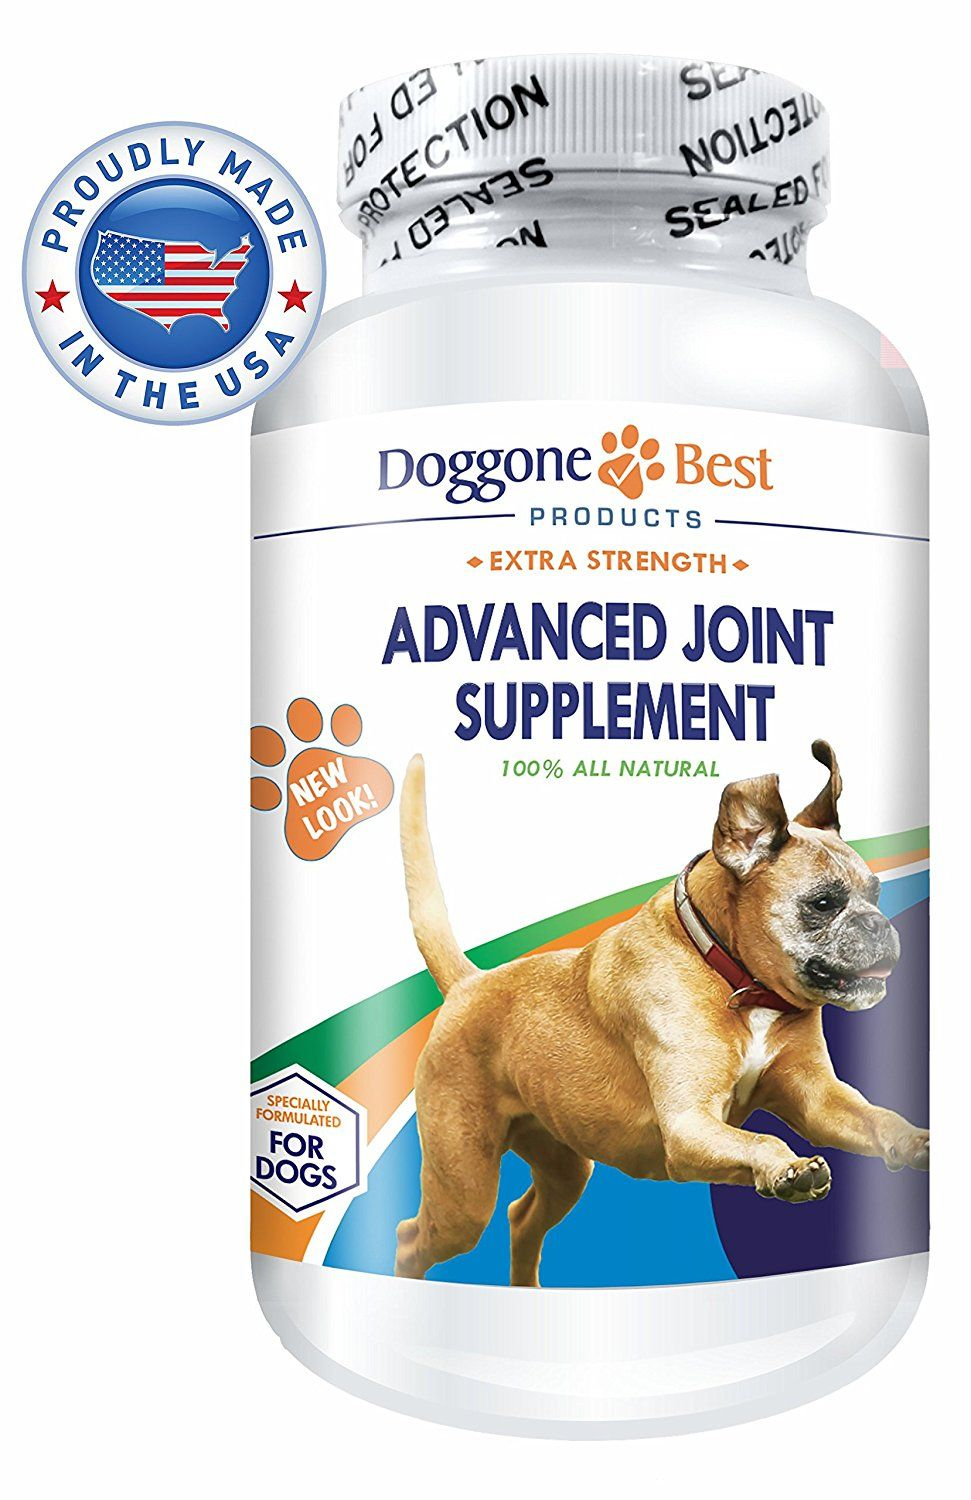 Pin on Dog supplies for health